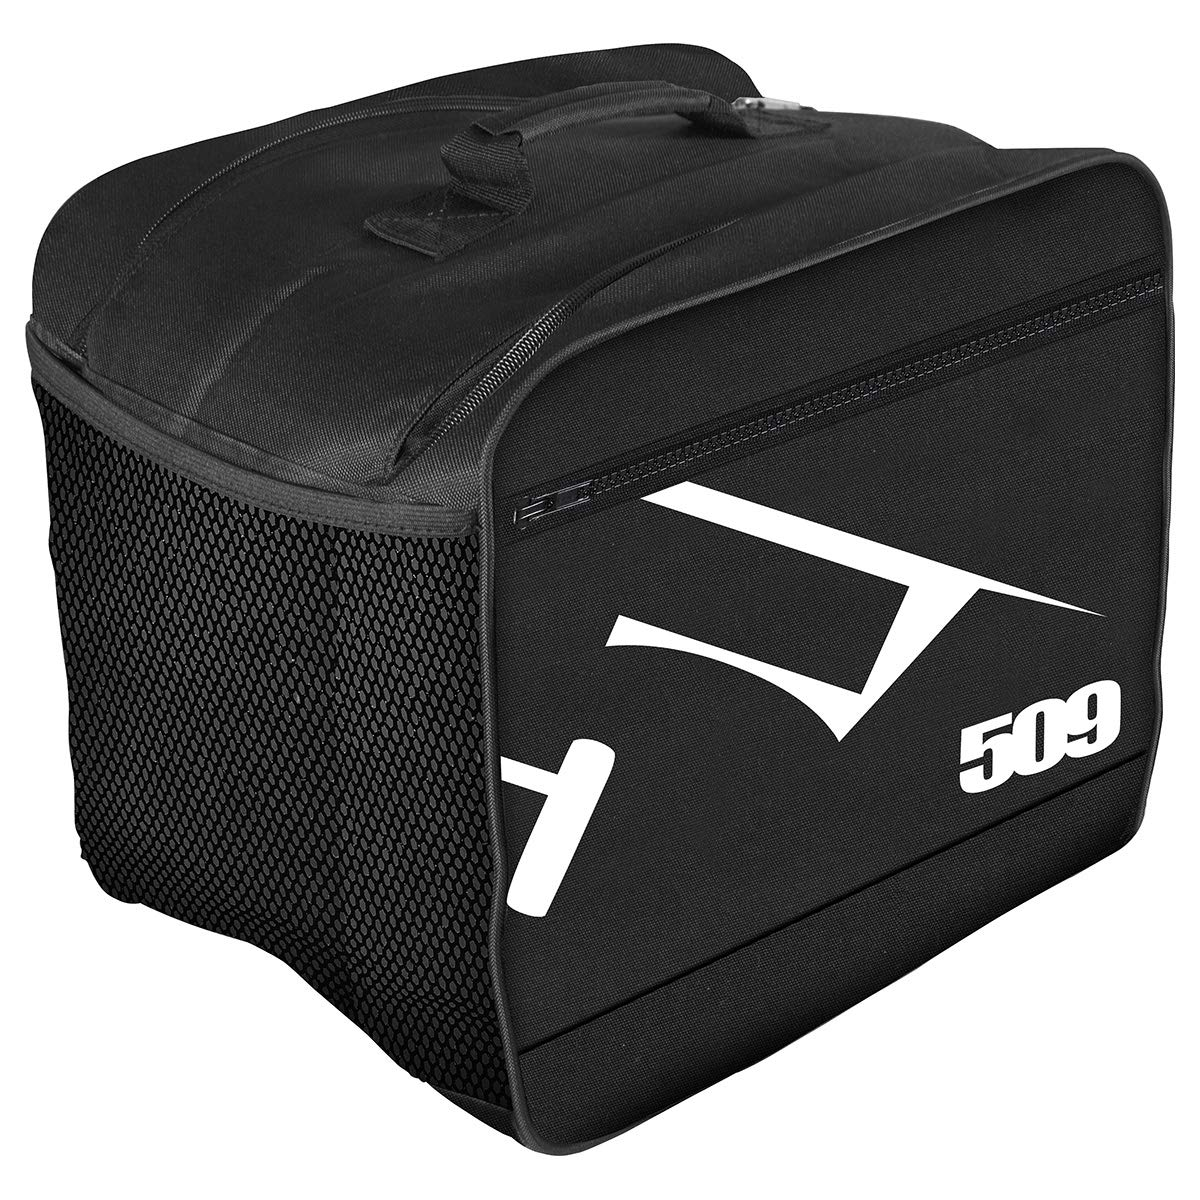 509 Universal Helmet Gear Bag